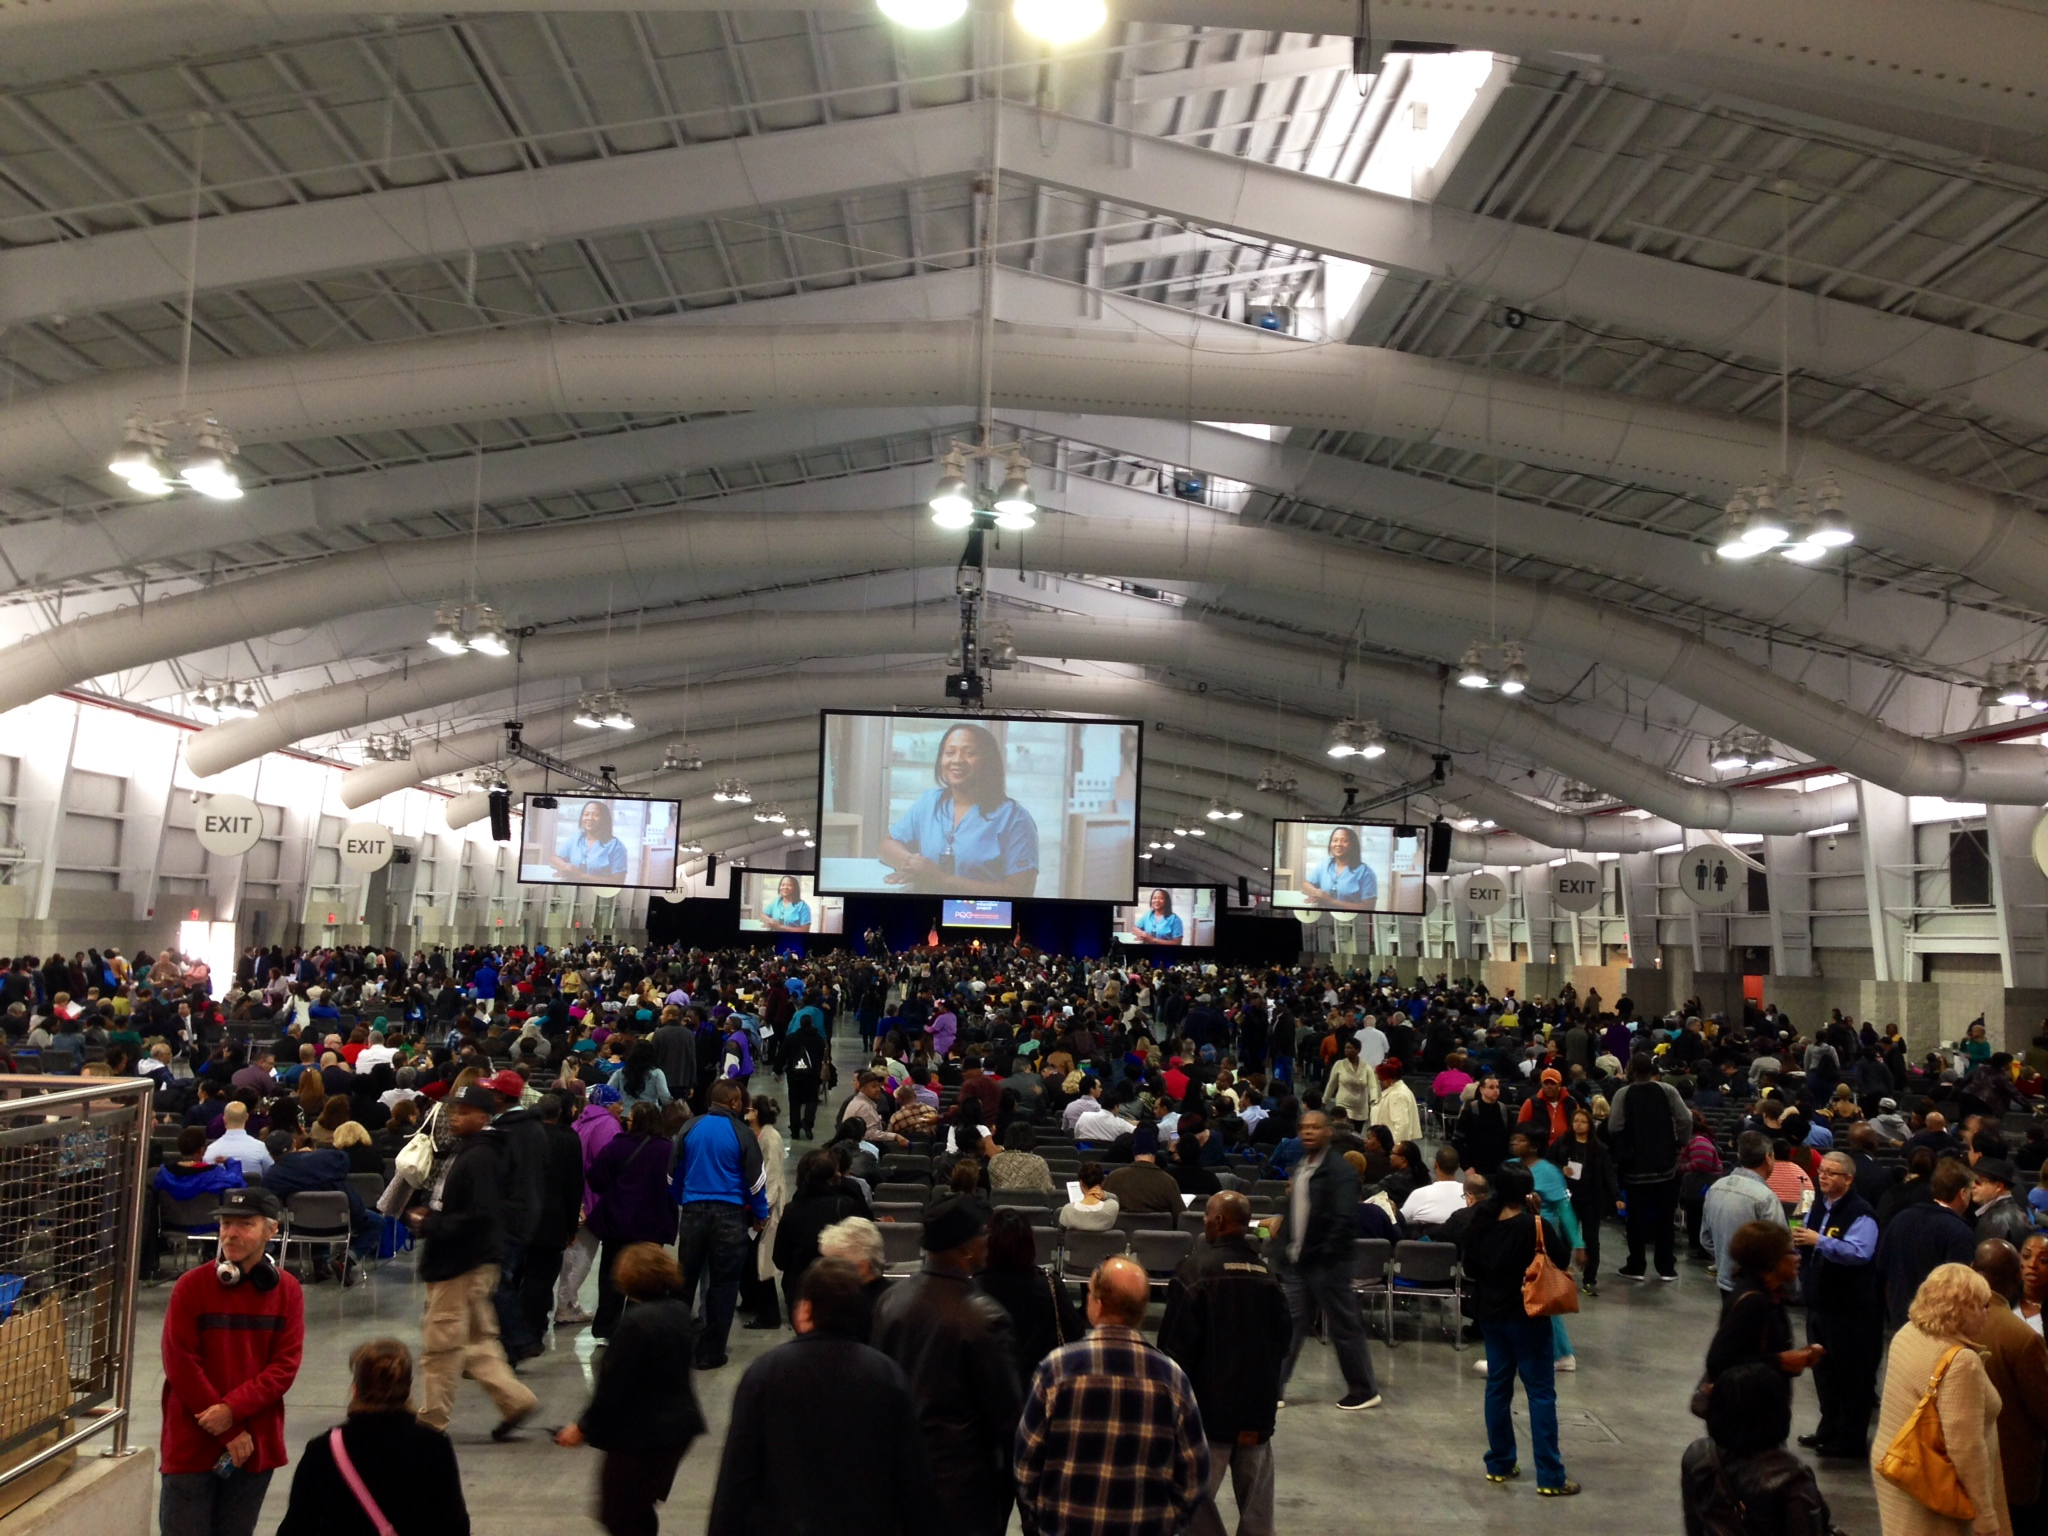 Over 5,000 health care workers gather in the Javtis Center in New York City to attend an Ebola education session.